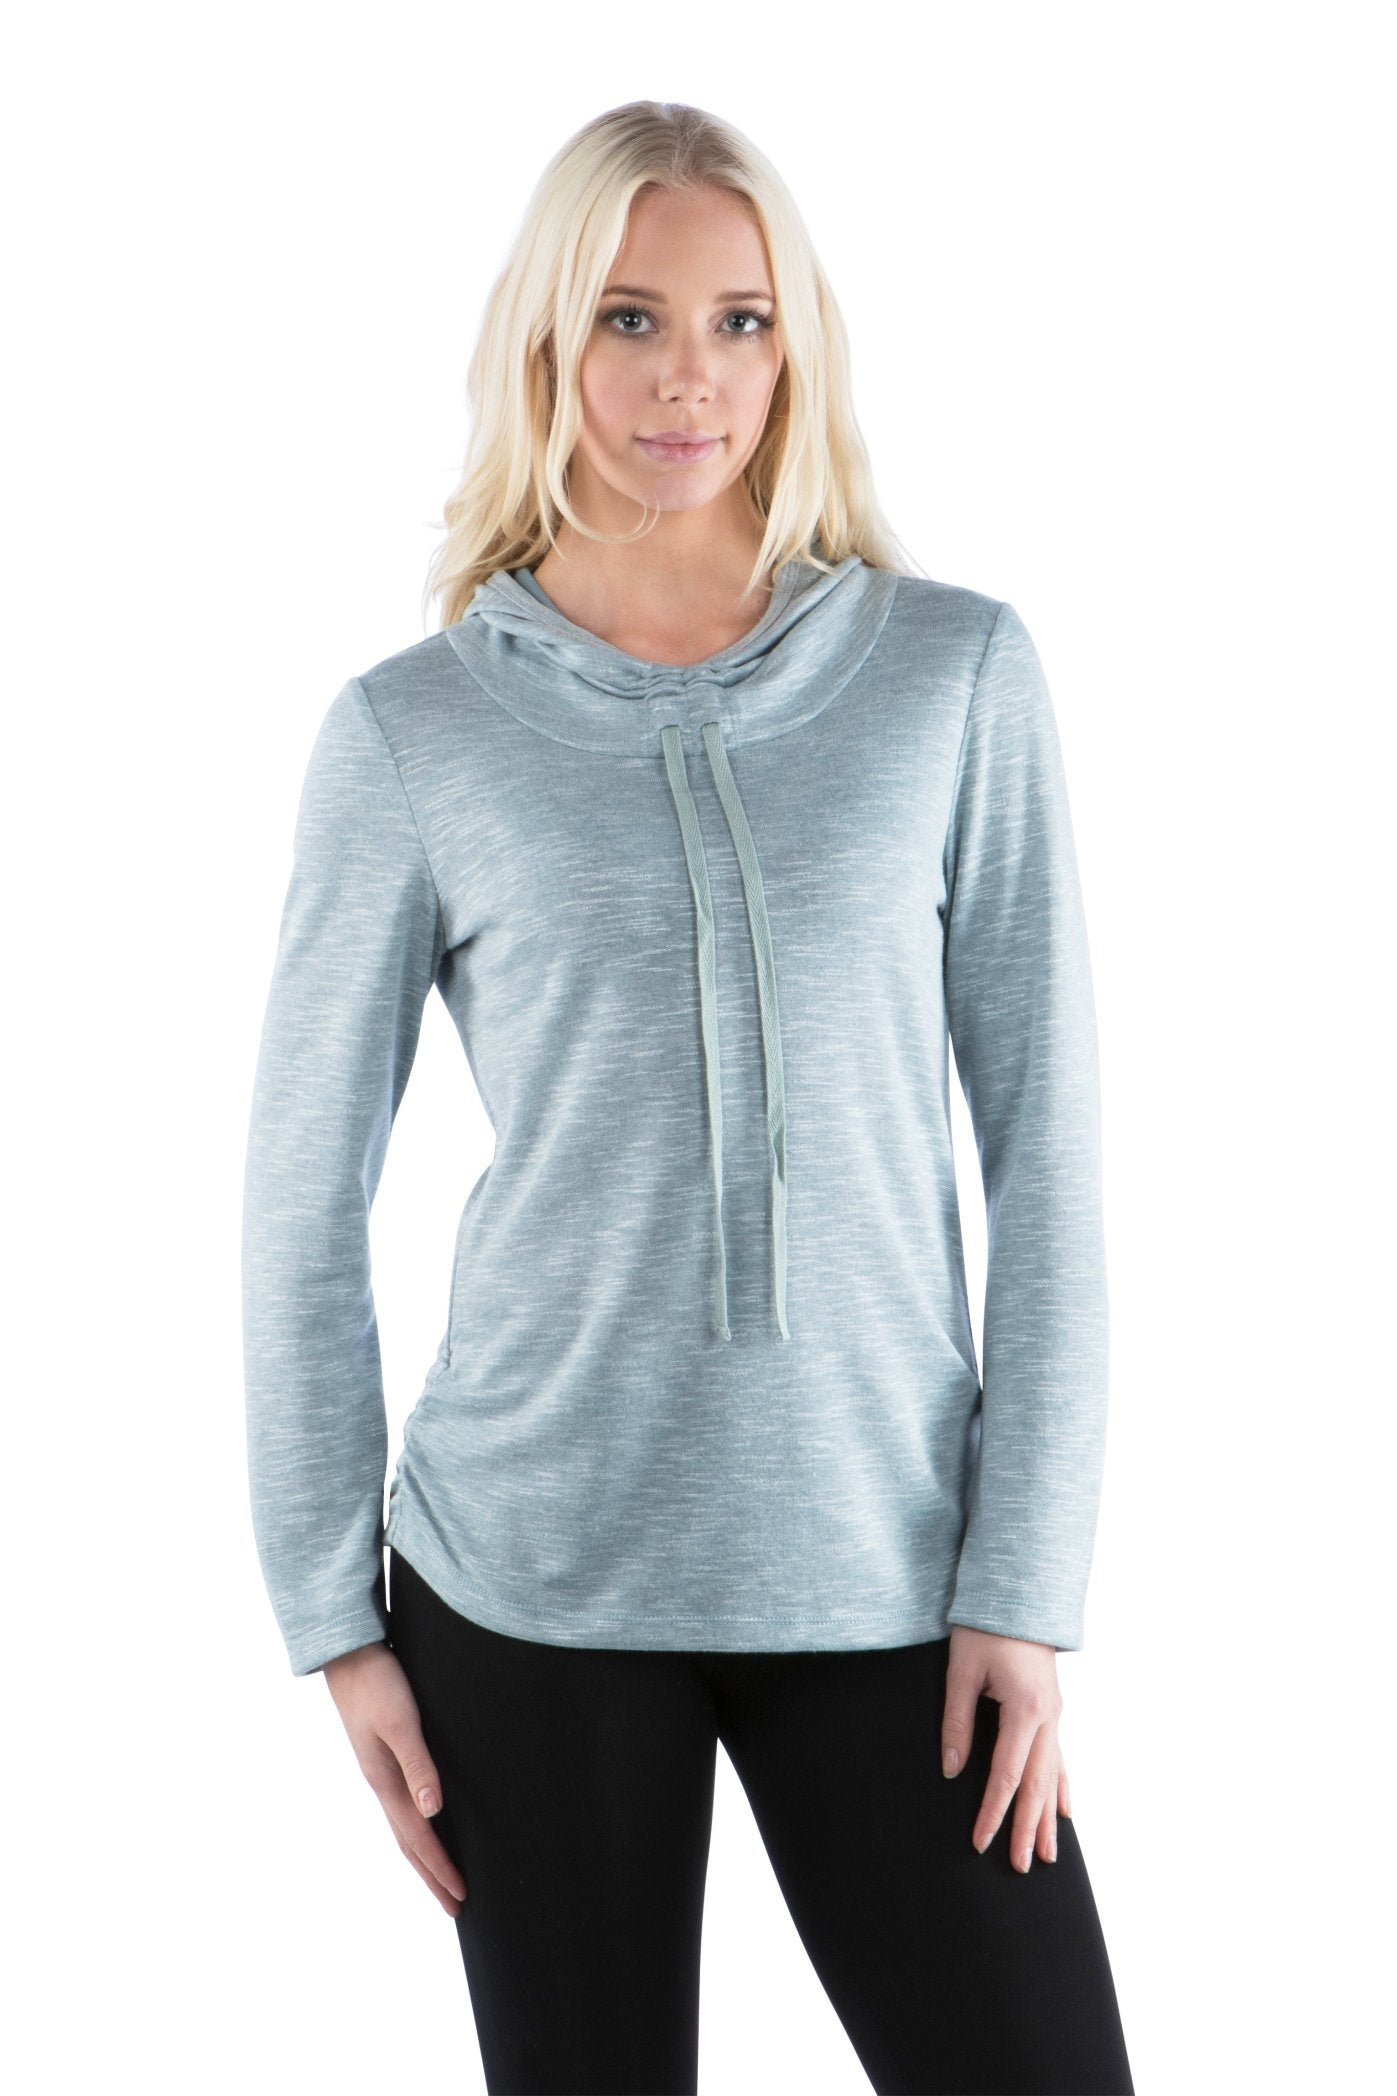 Cowl Neck Athleisure Hoodie with Drawstrings, Light Teal Hoodie, Blue Hoodie